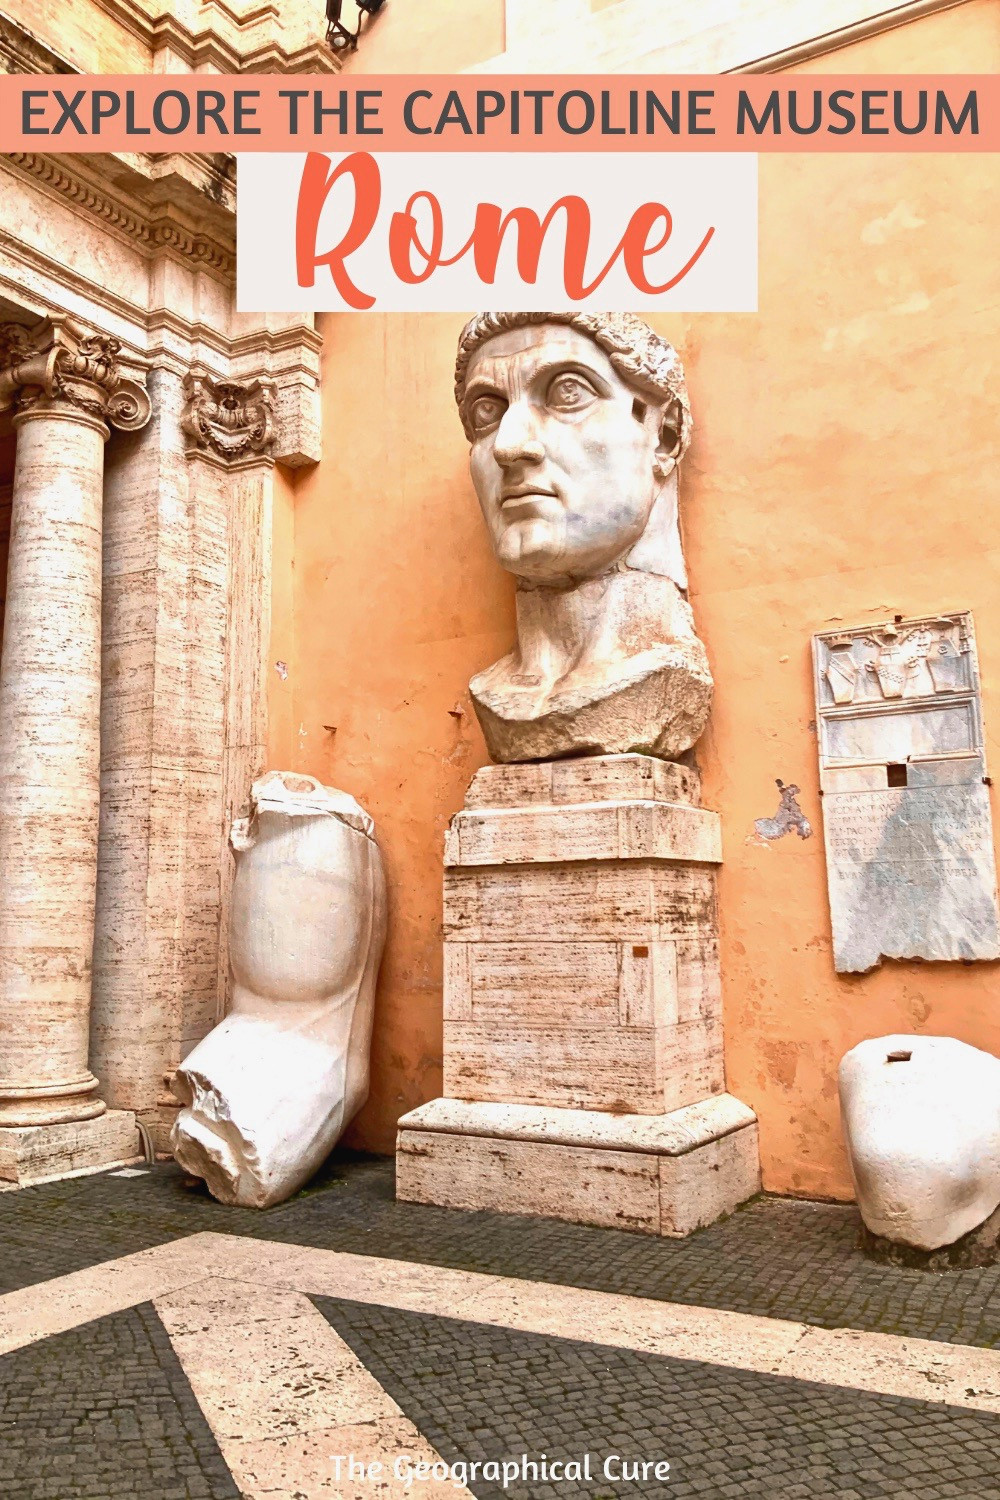 guide to the amazing Capitoline Museum in Rome Italy